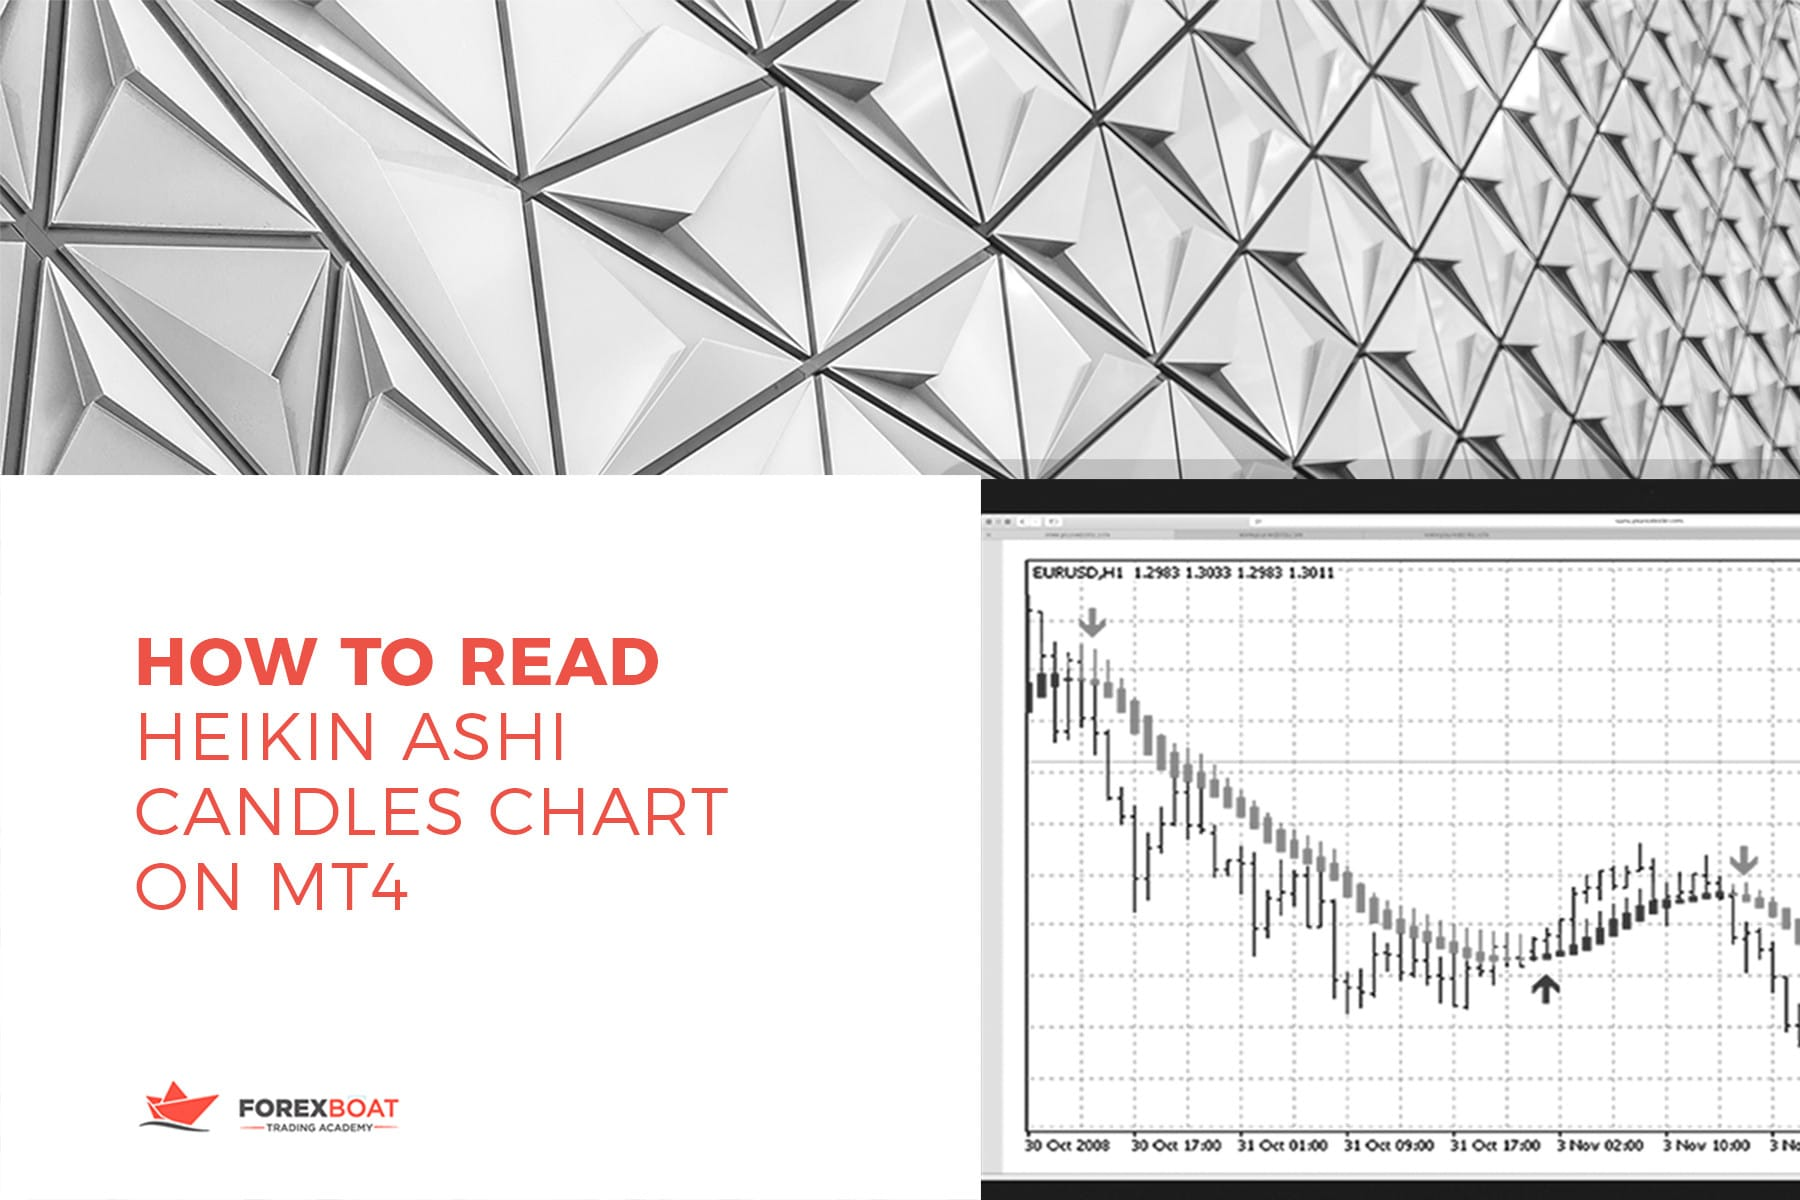 How to Read Heikin Ashi Candles Chart on MT4